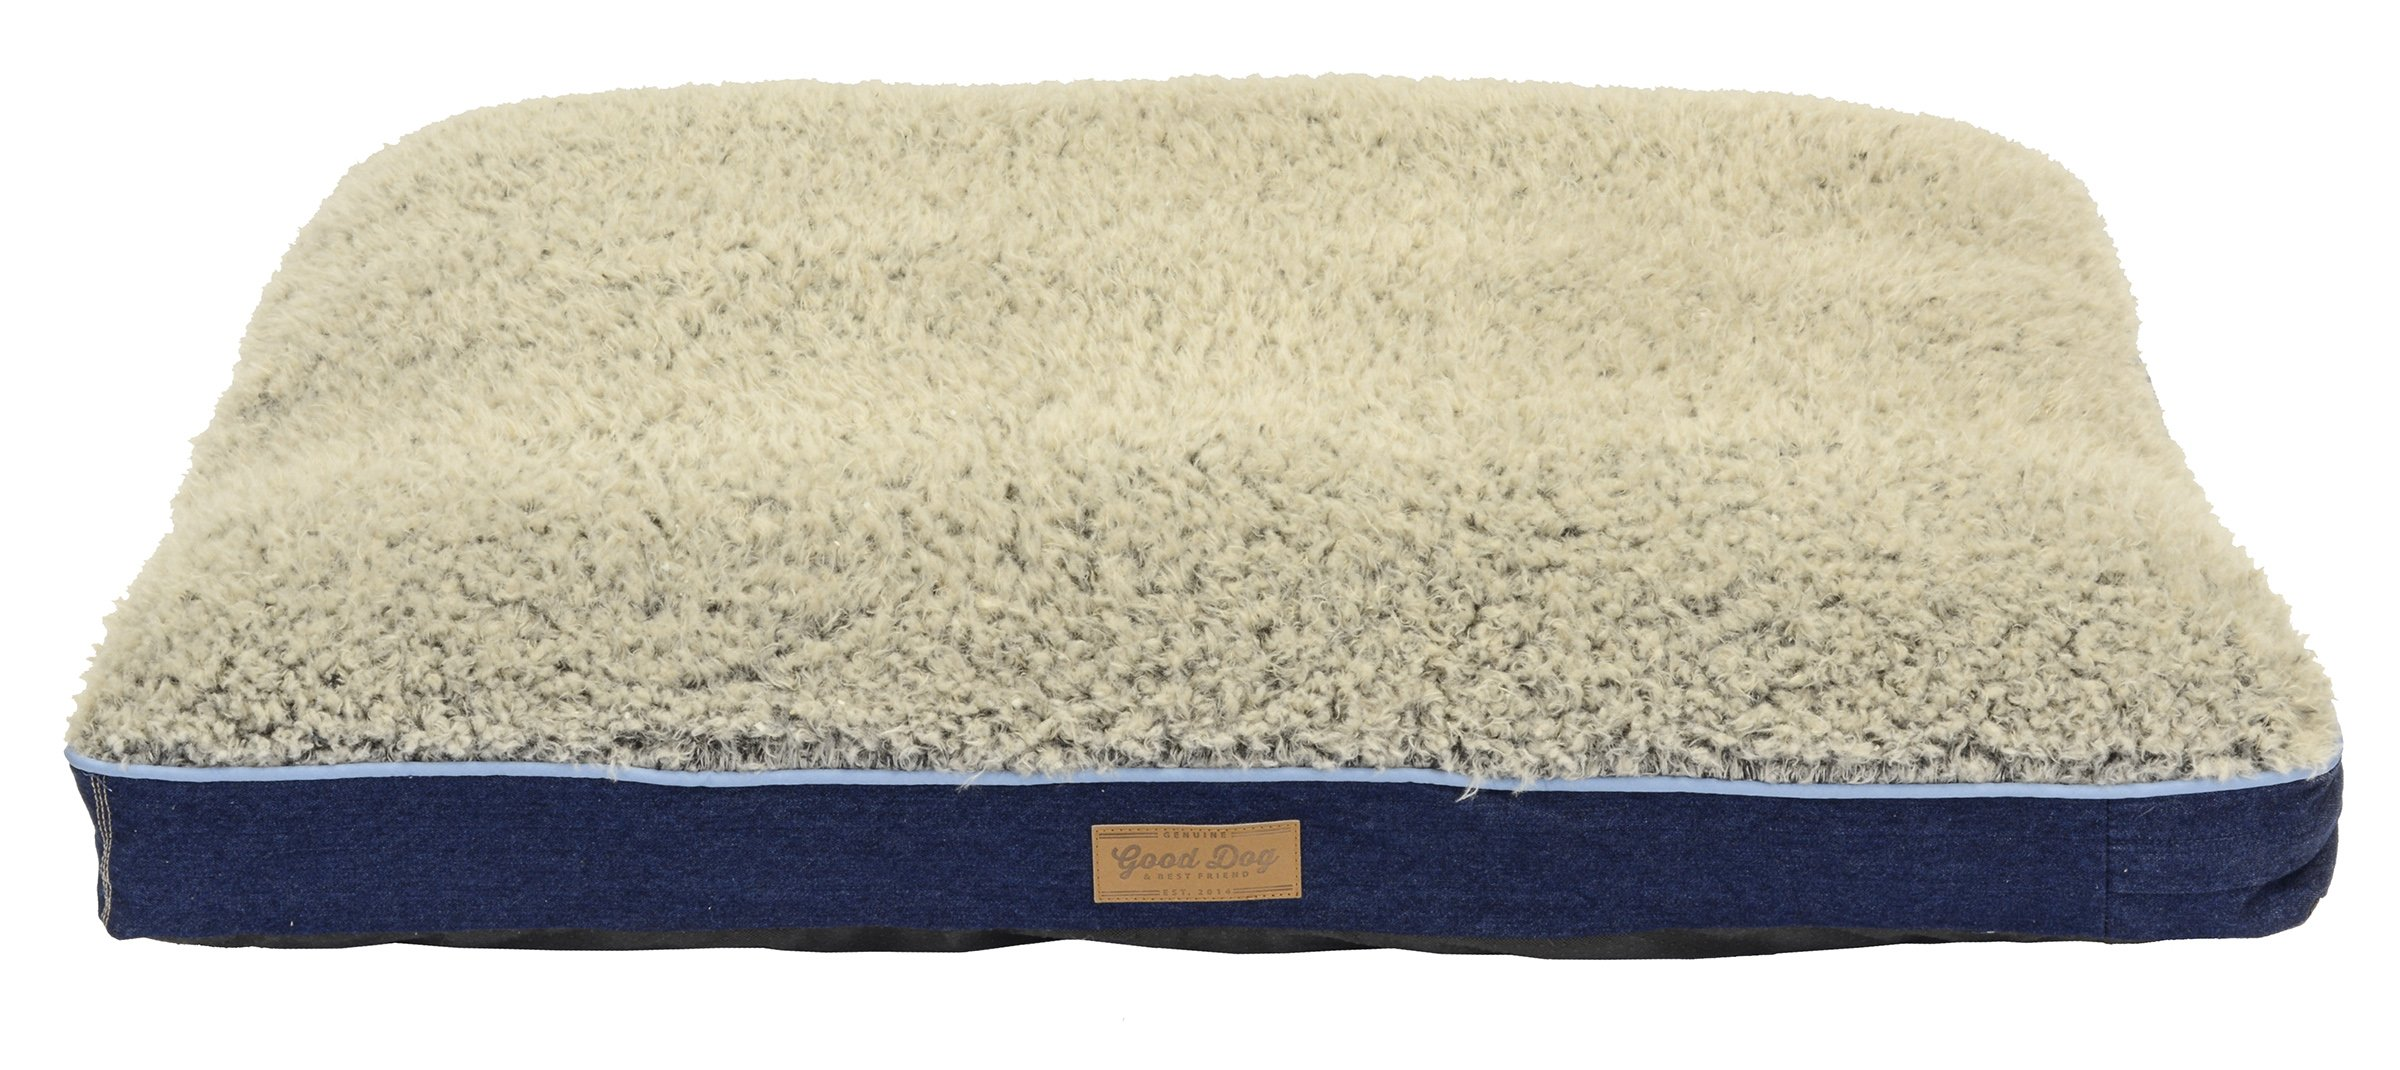 Dallas Manufacturing Co. Large Dog Bed with Chipped Memory Foam by Good Dog & Best Friend   Machine Washable Bed in Denim with Non Skid Bottom